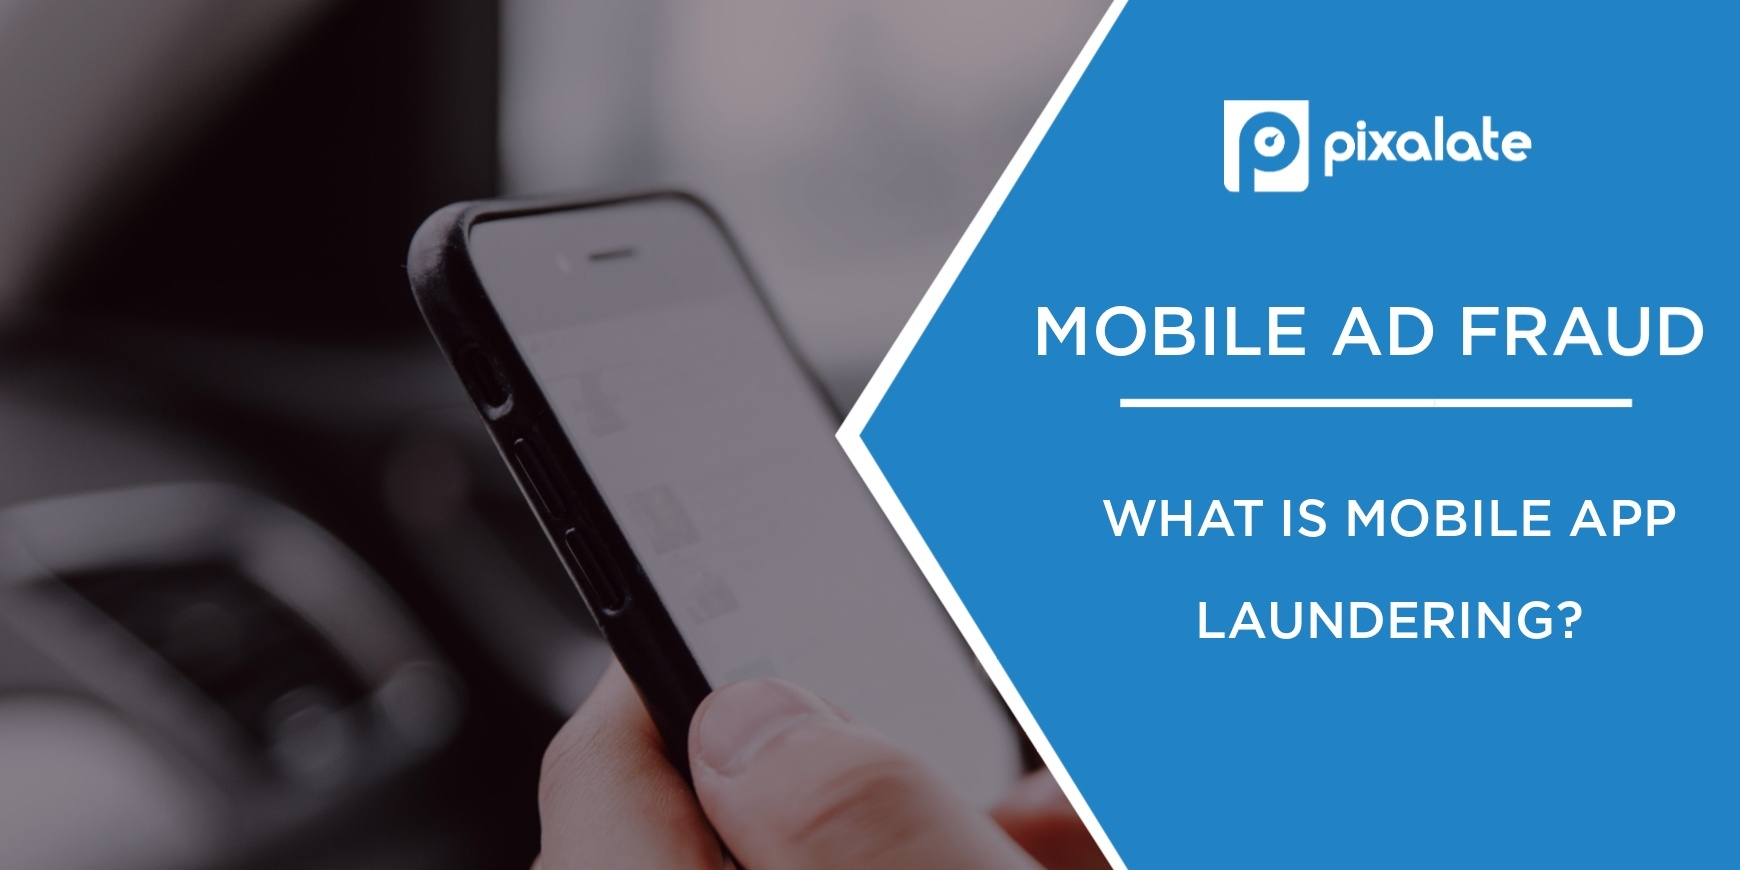 mobile-ad-fraud-what-is-mobile-app-laundering